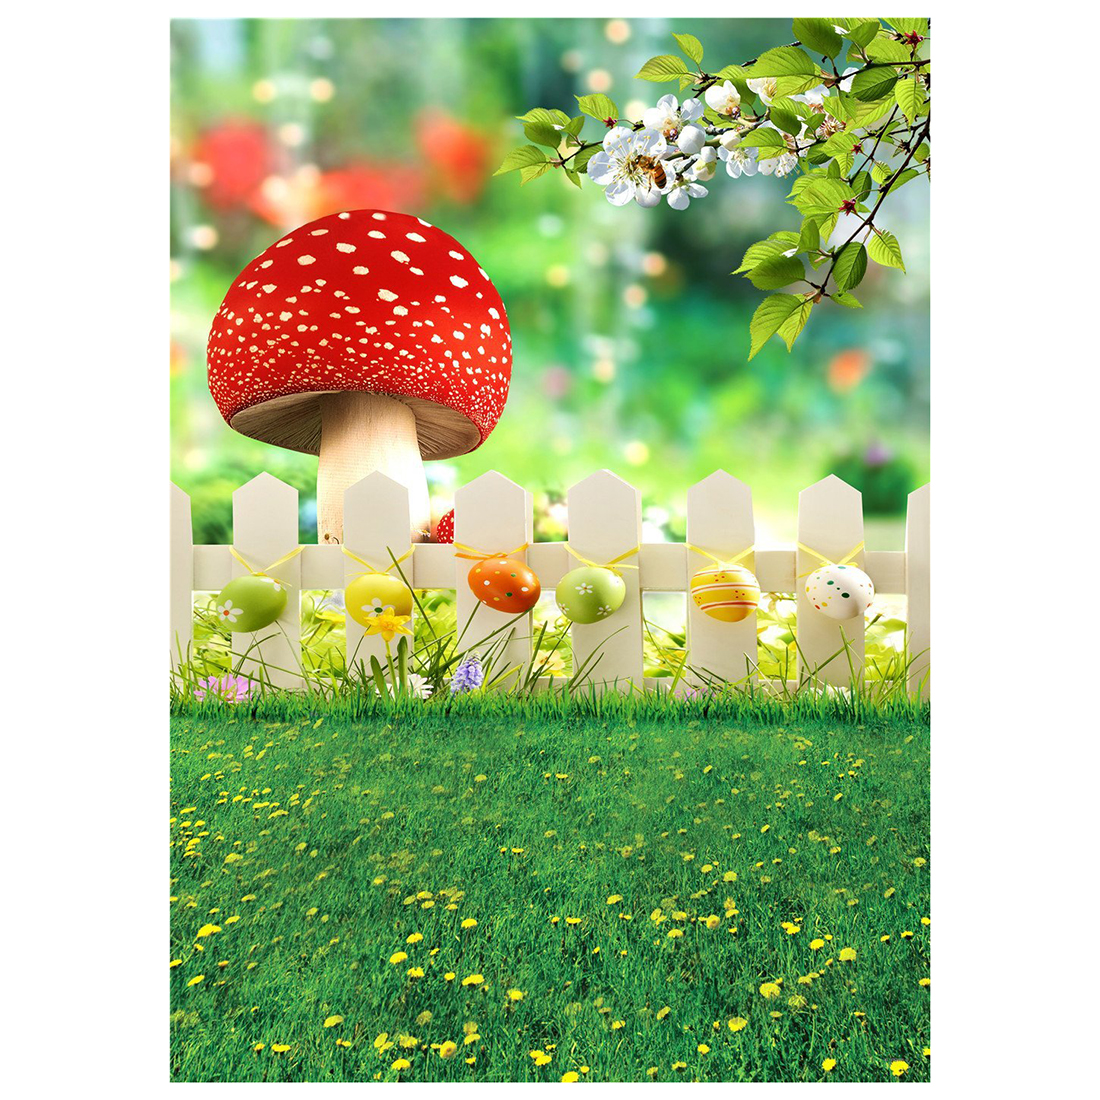 3x5ft Easter Backdrops Natural Scenery Spring Photography Studio Yellow Flowers Colorful Eggs Photo Background for Children Ba